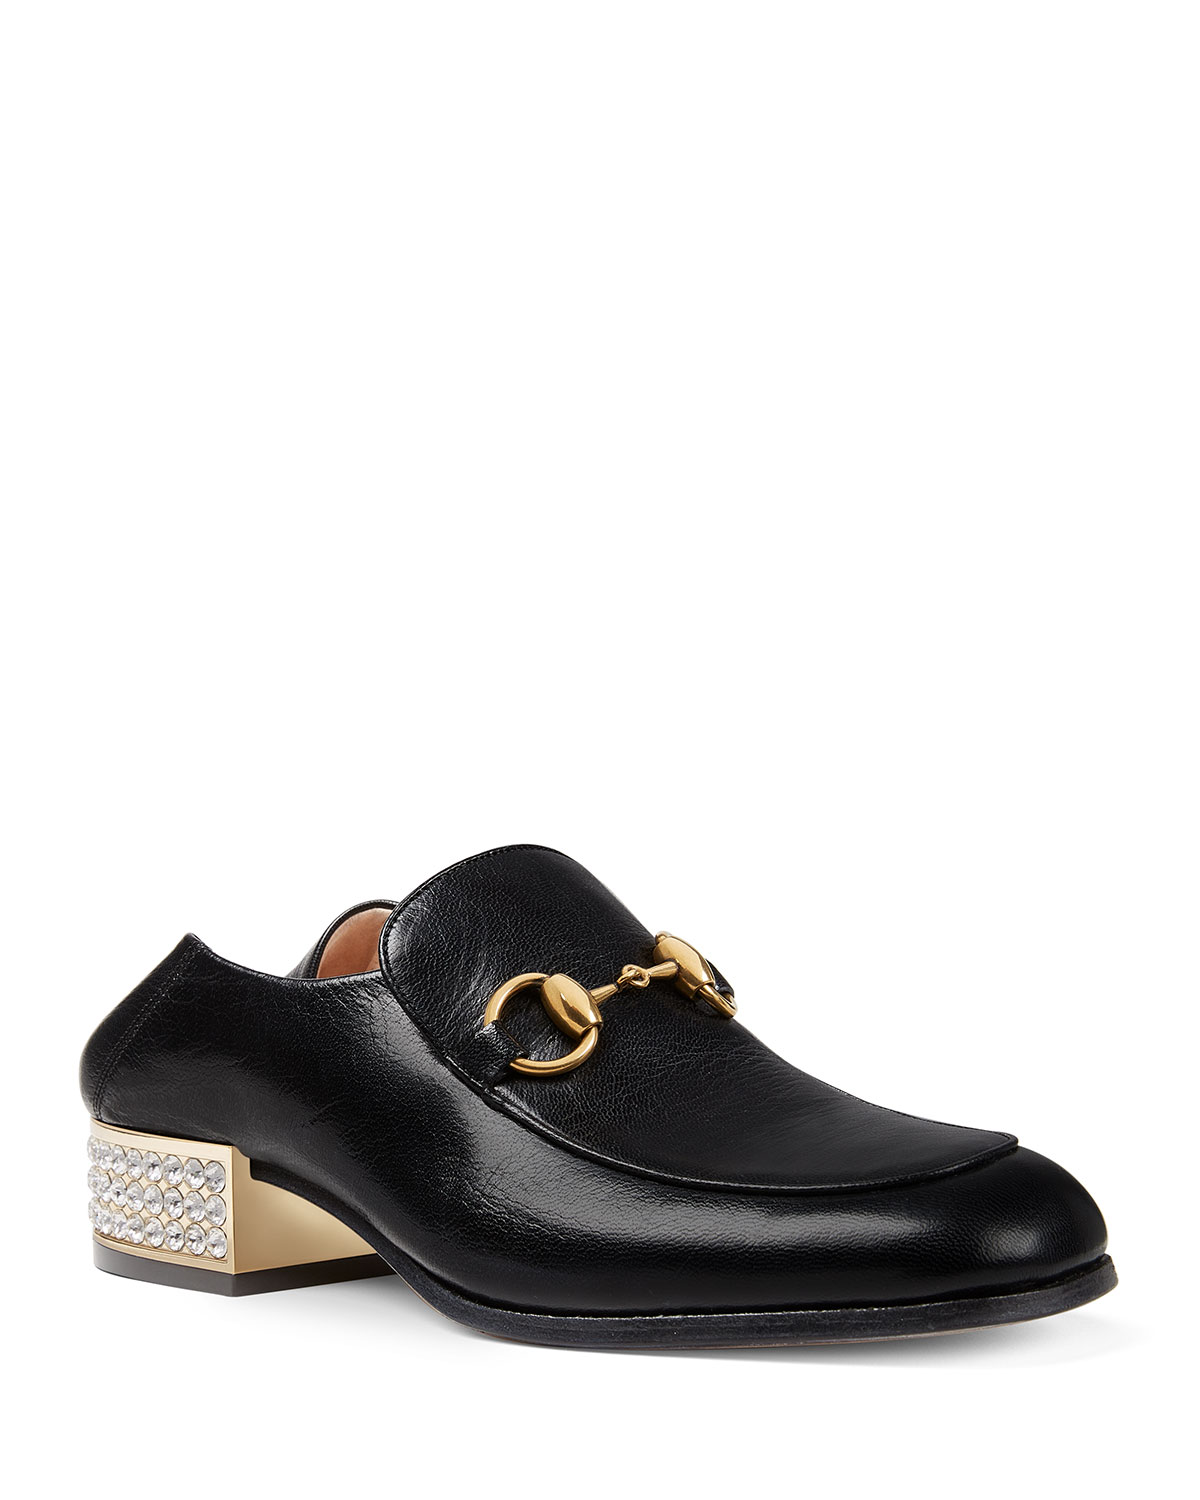 LEATHER 30MM LOAFER